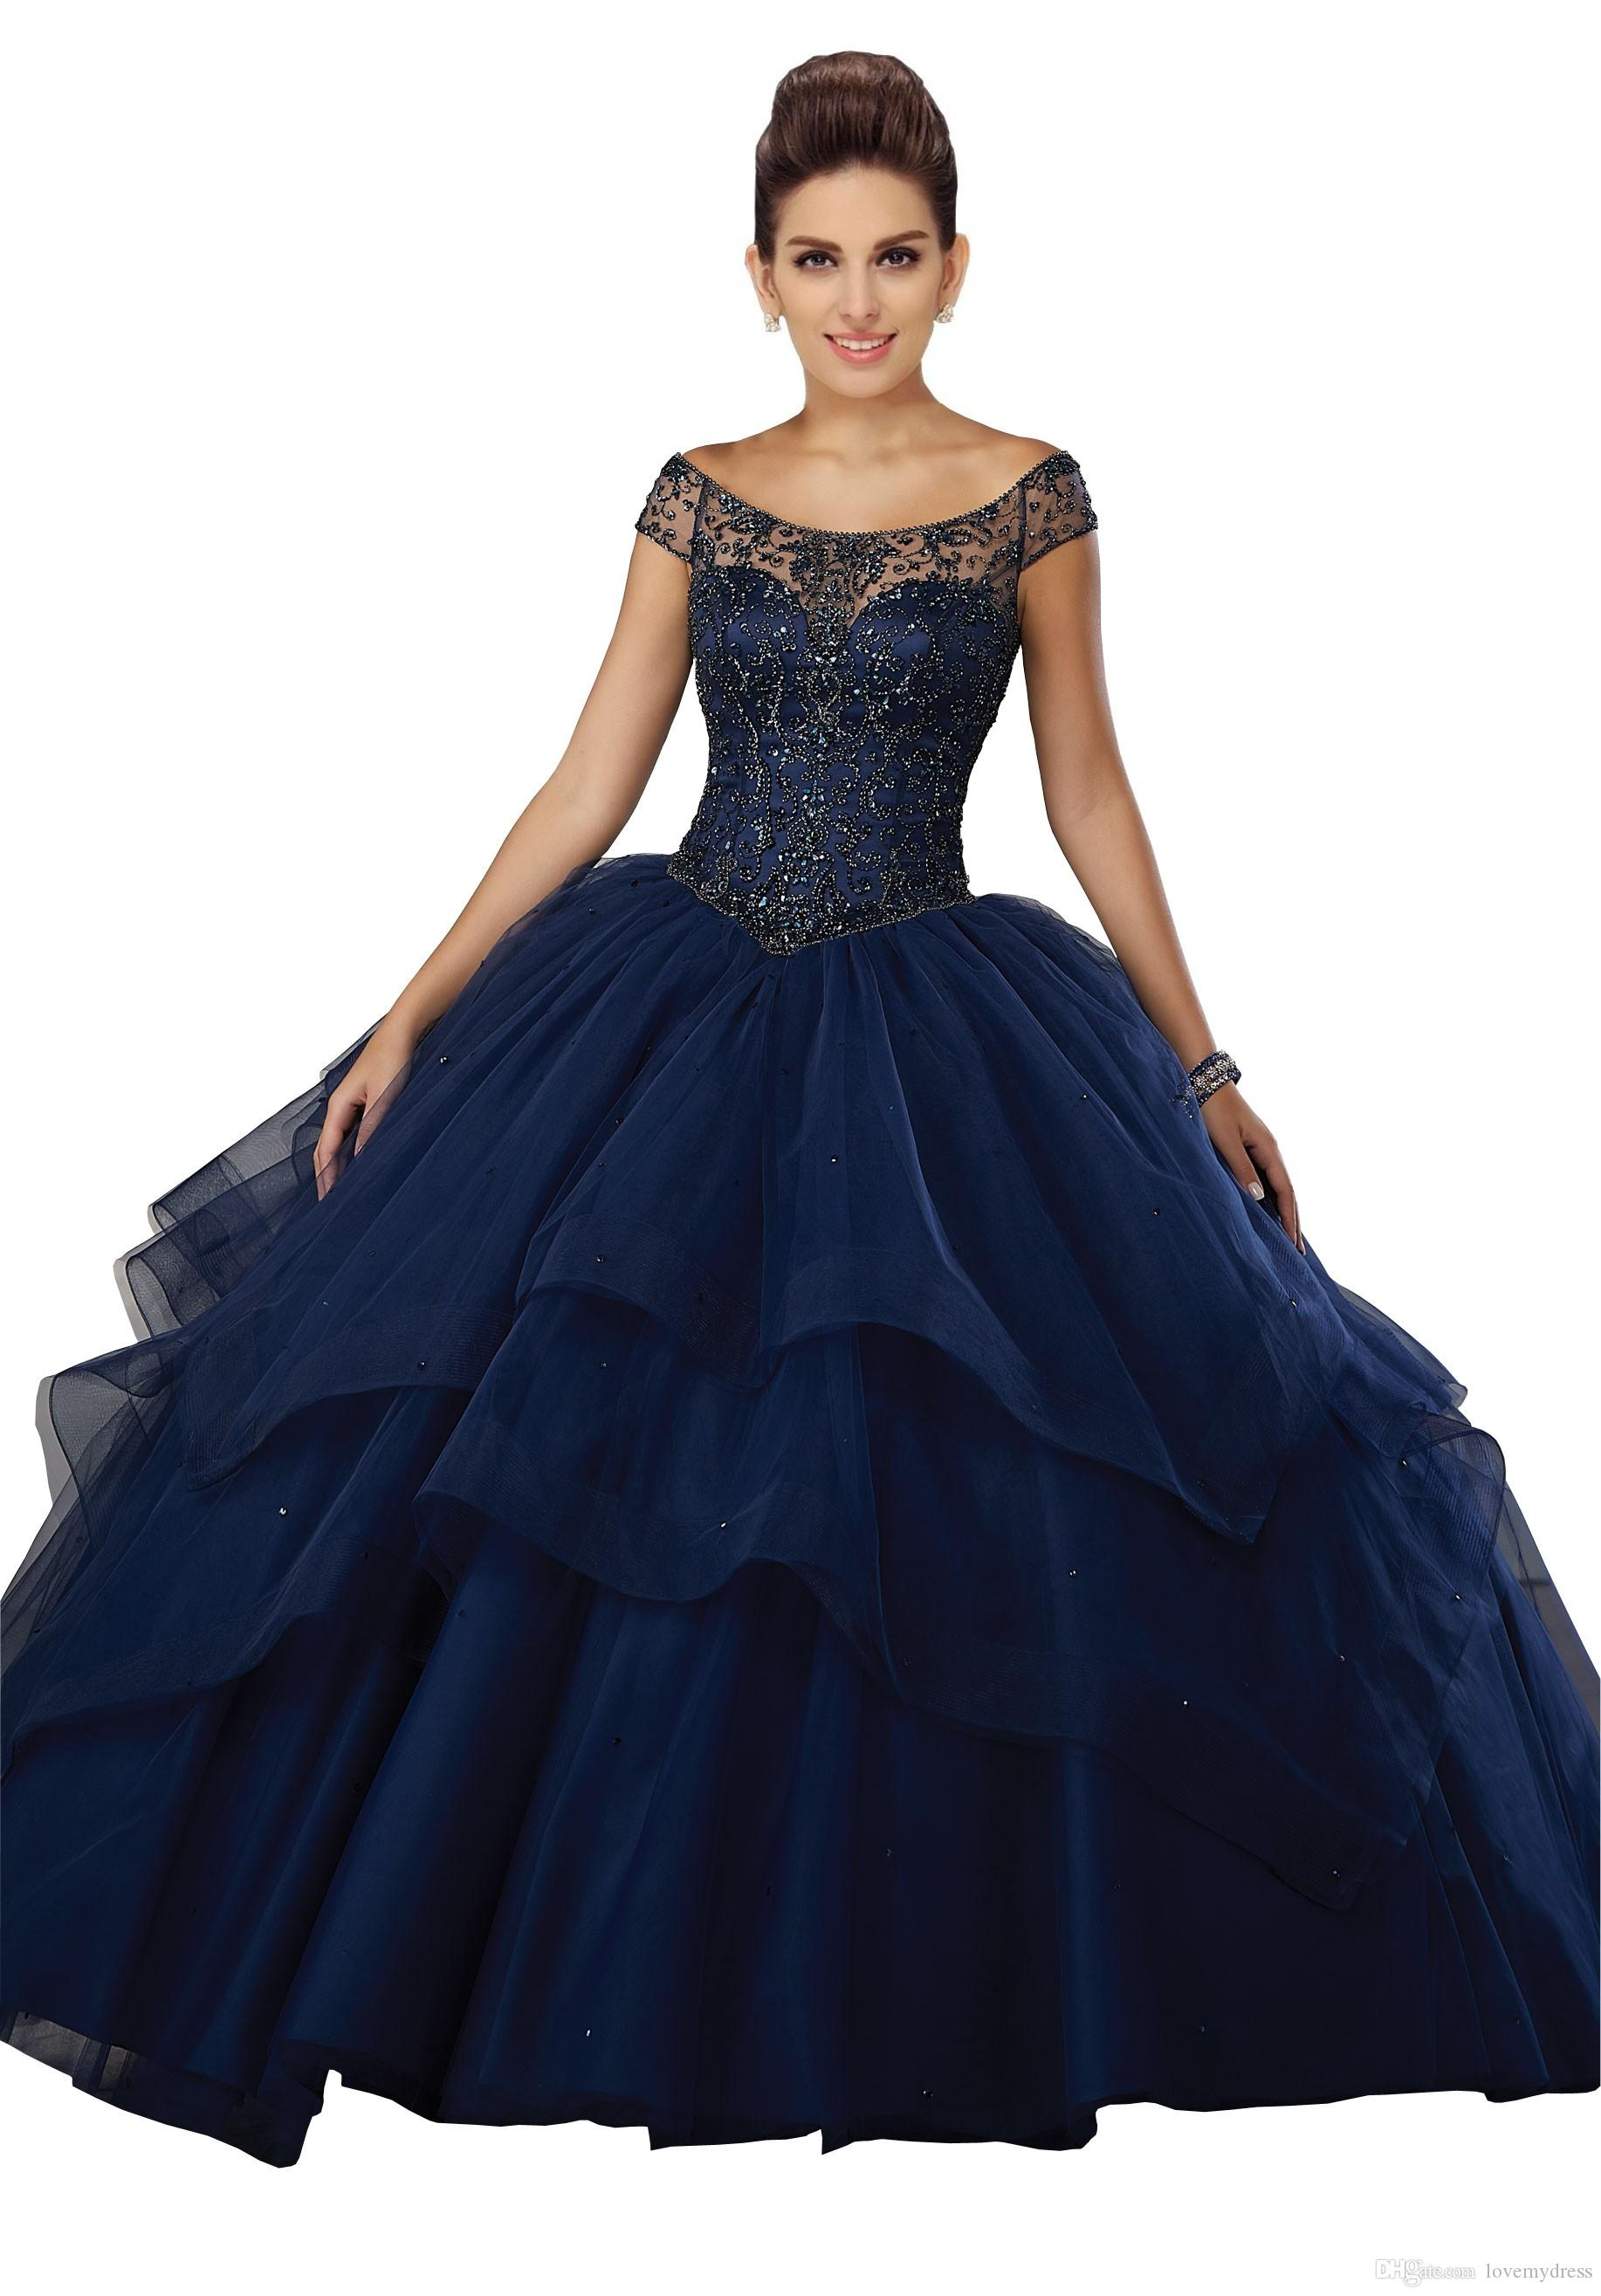 193fcf2a356 Stunning Navy Blue Sweet 16 Ball Gown Dresses Quinceanera Prom Dress Jewel  Sheer Neck With Sleeves Bling Beaded Tulle Ruched Layers Party Canada 2019  From ...